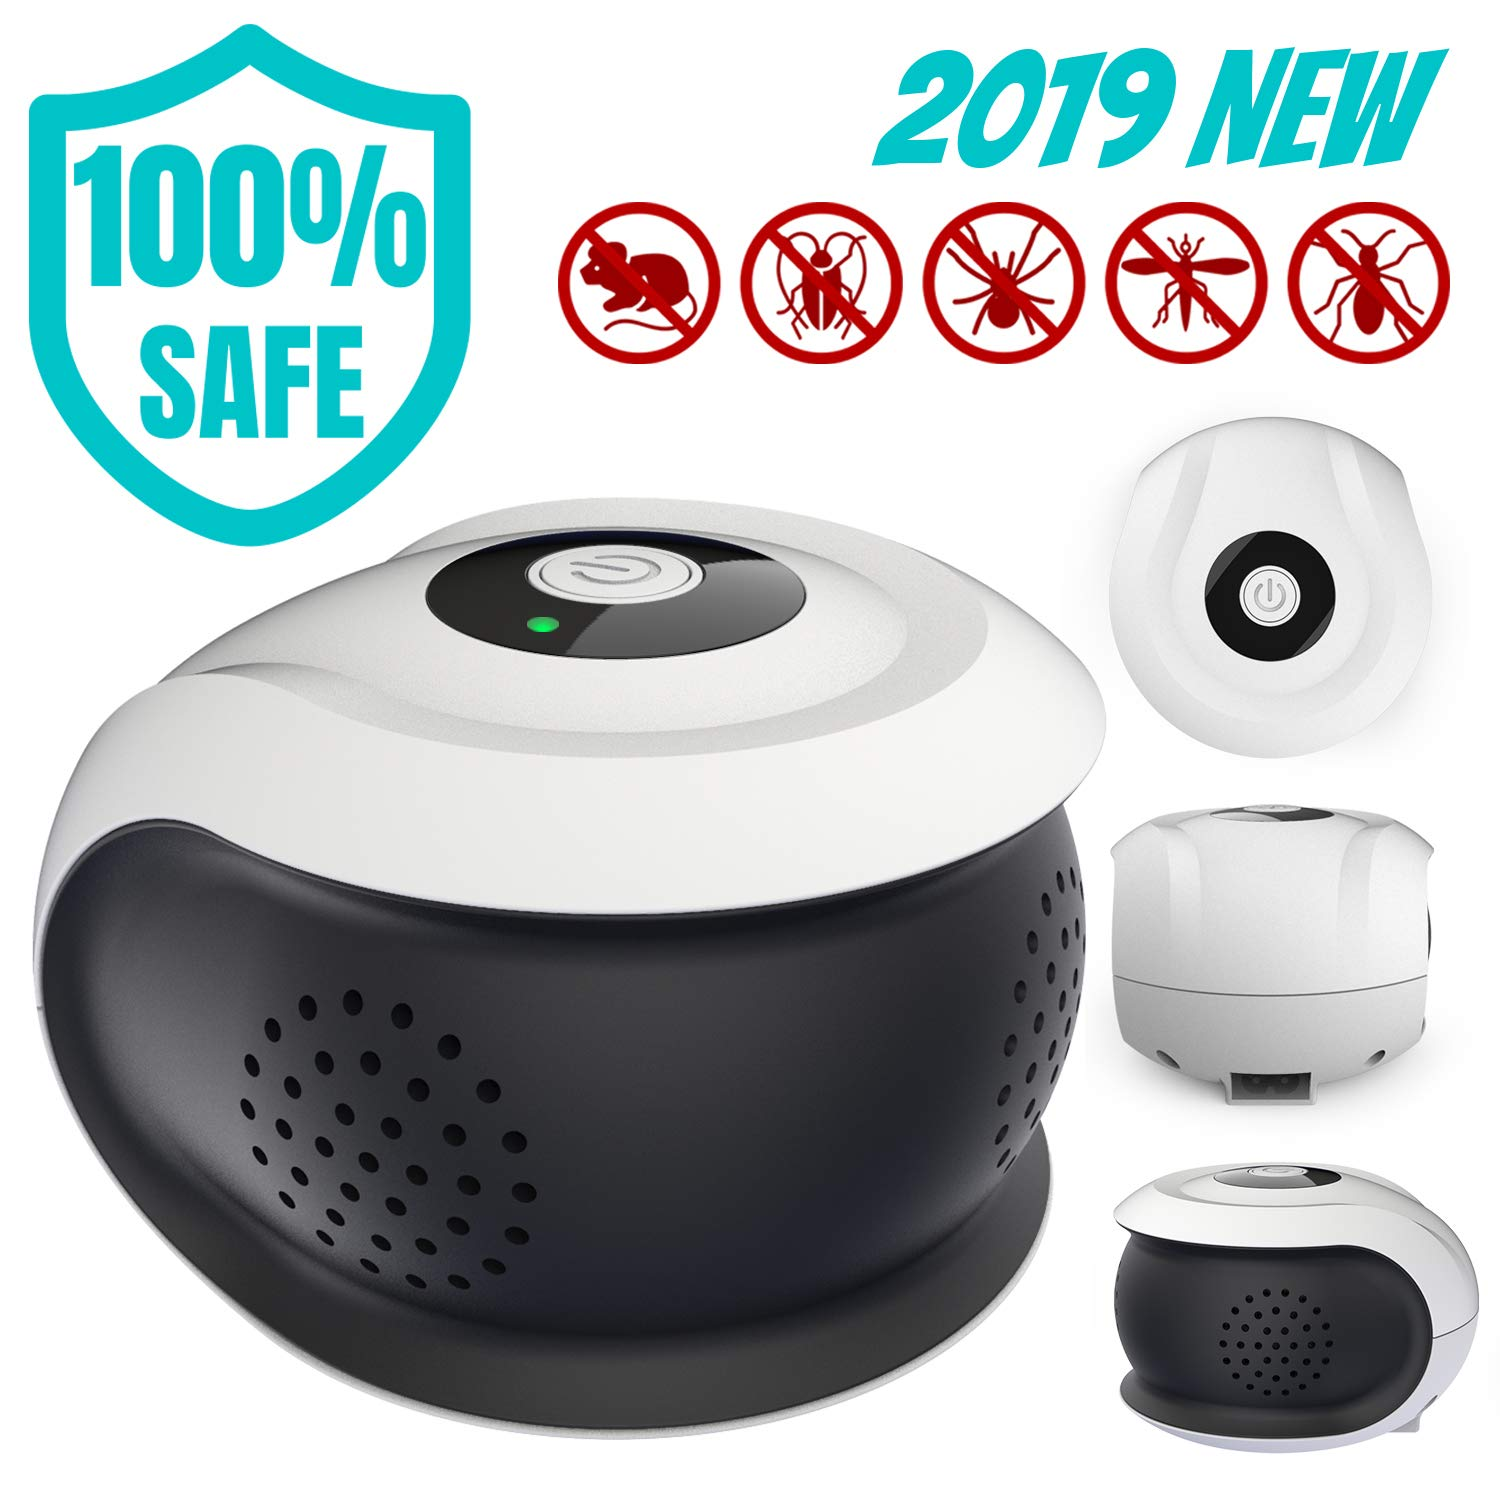 CQOO Ultrasonic Pest Repeller PRO- Three Speakers,Professional and New Upgrade Electronic Pest Control Plug in,Pest Control for Mouse, Roach, Spider, Ants and More.Non-Toxic, Humans & Pest Safe. by CQOO